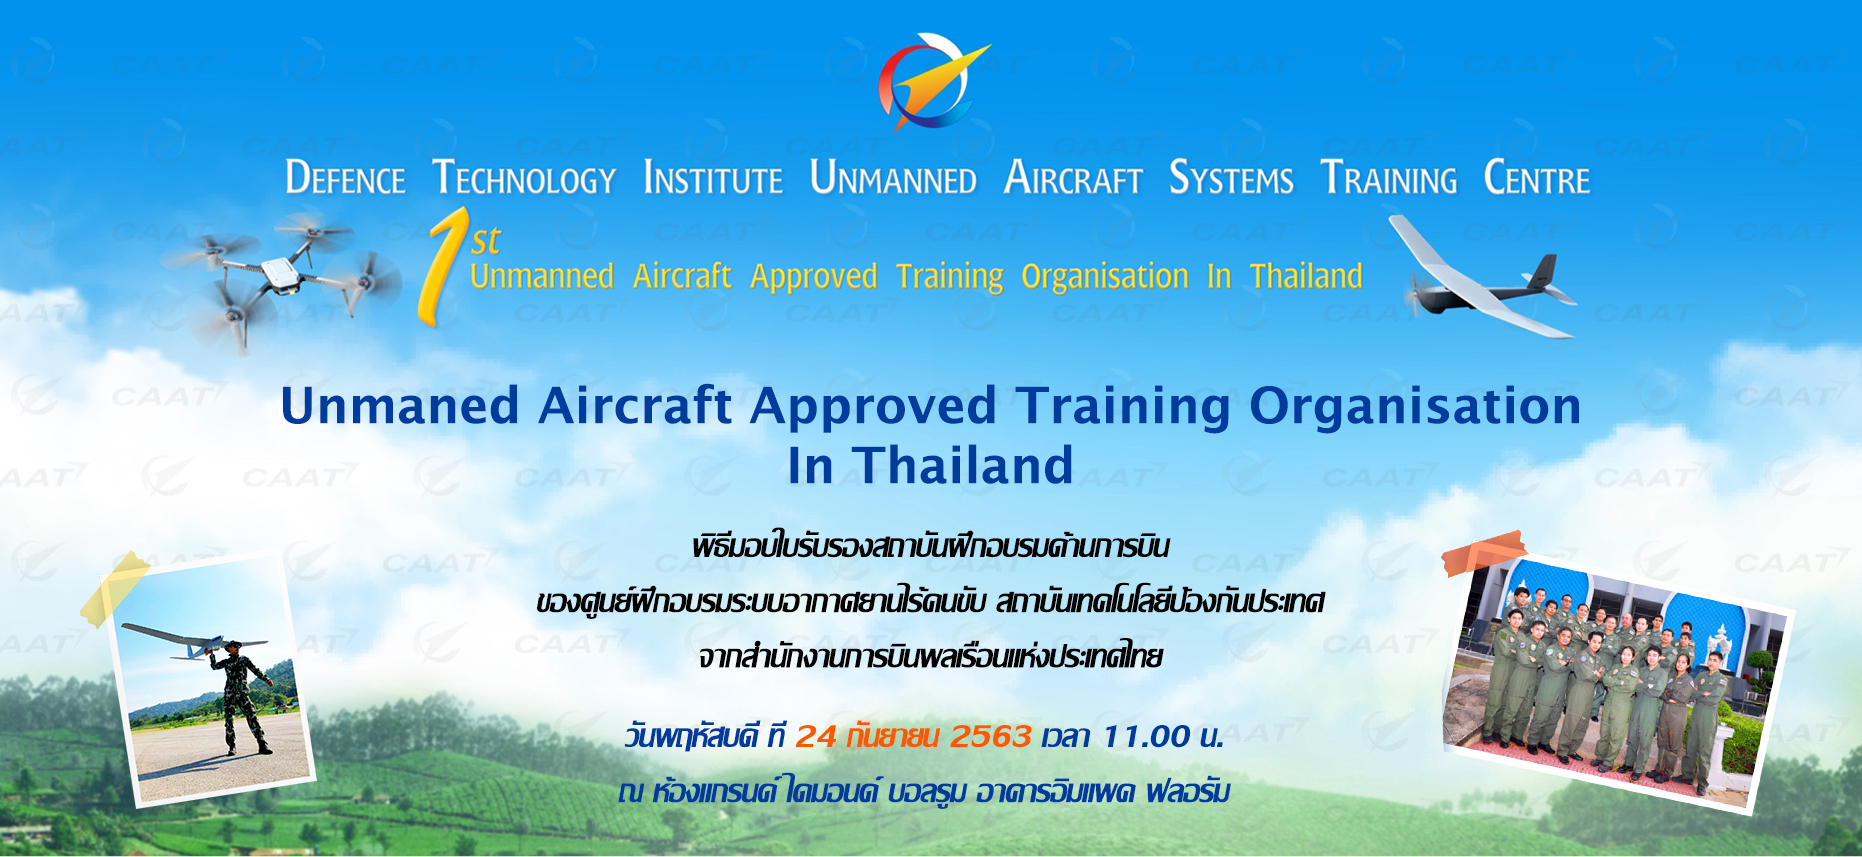 Unmanned Aircraft Approved Training Organisation In Thailand